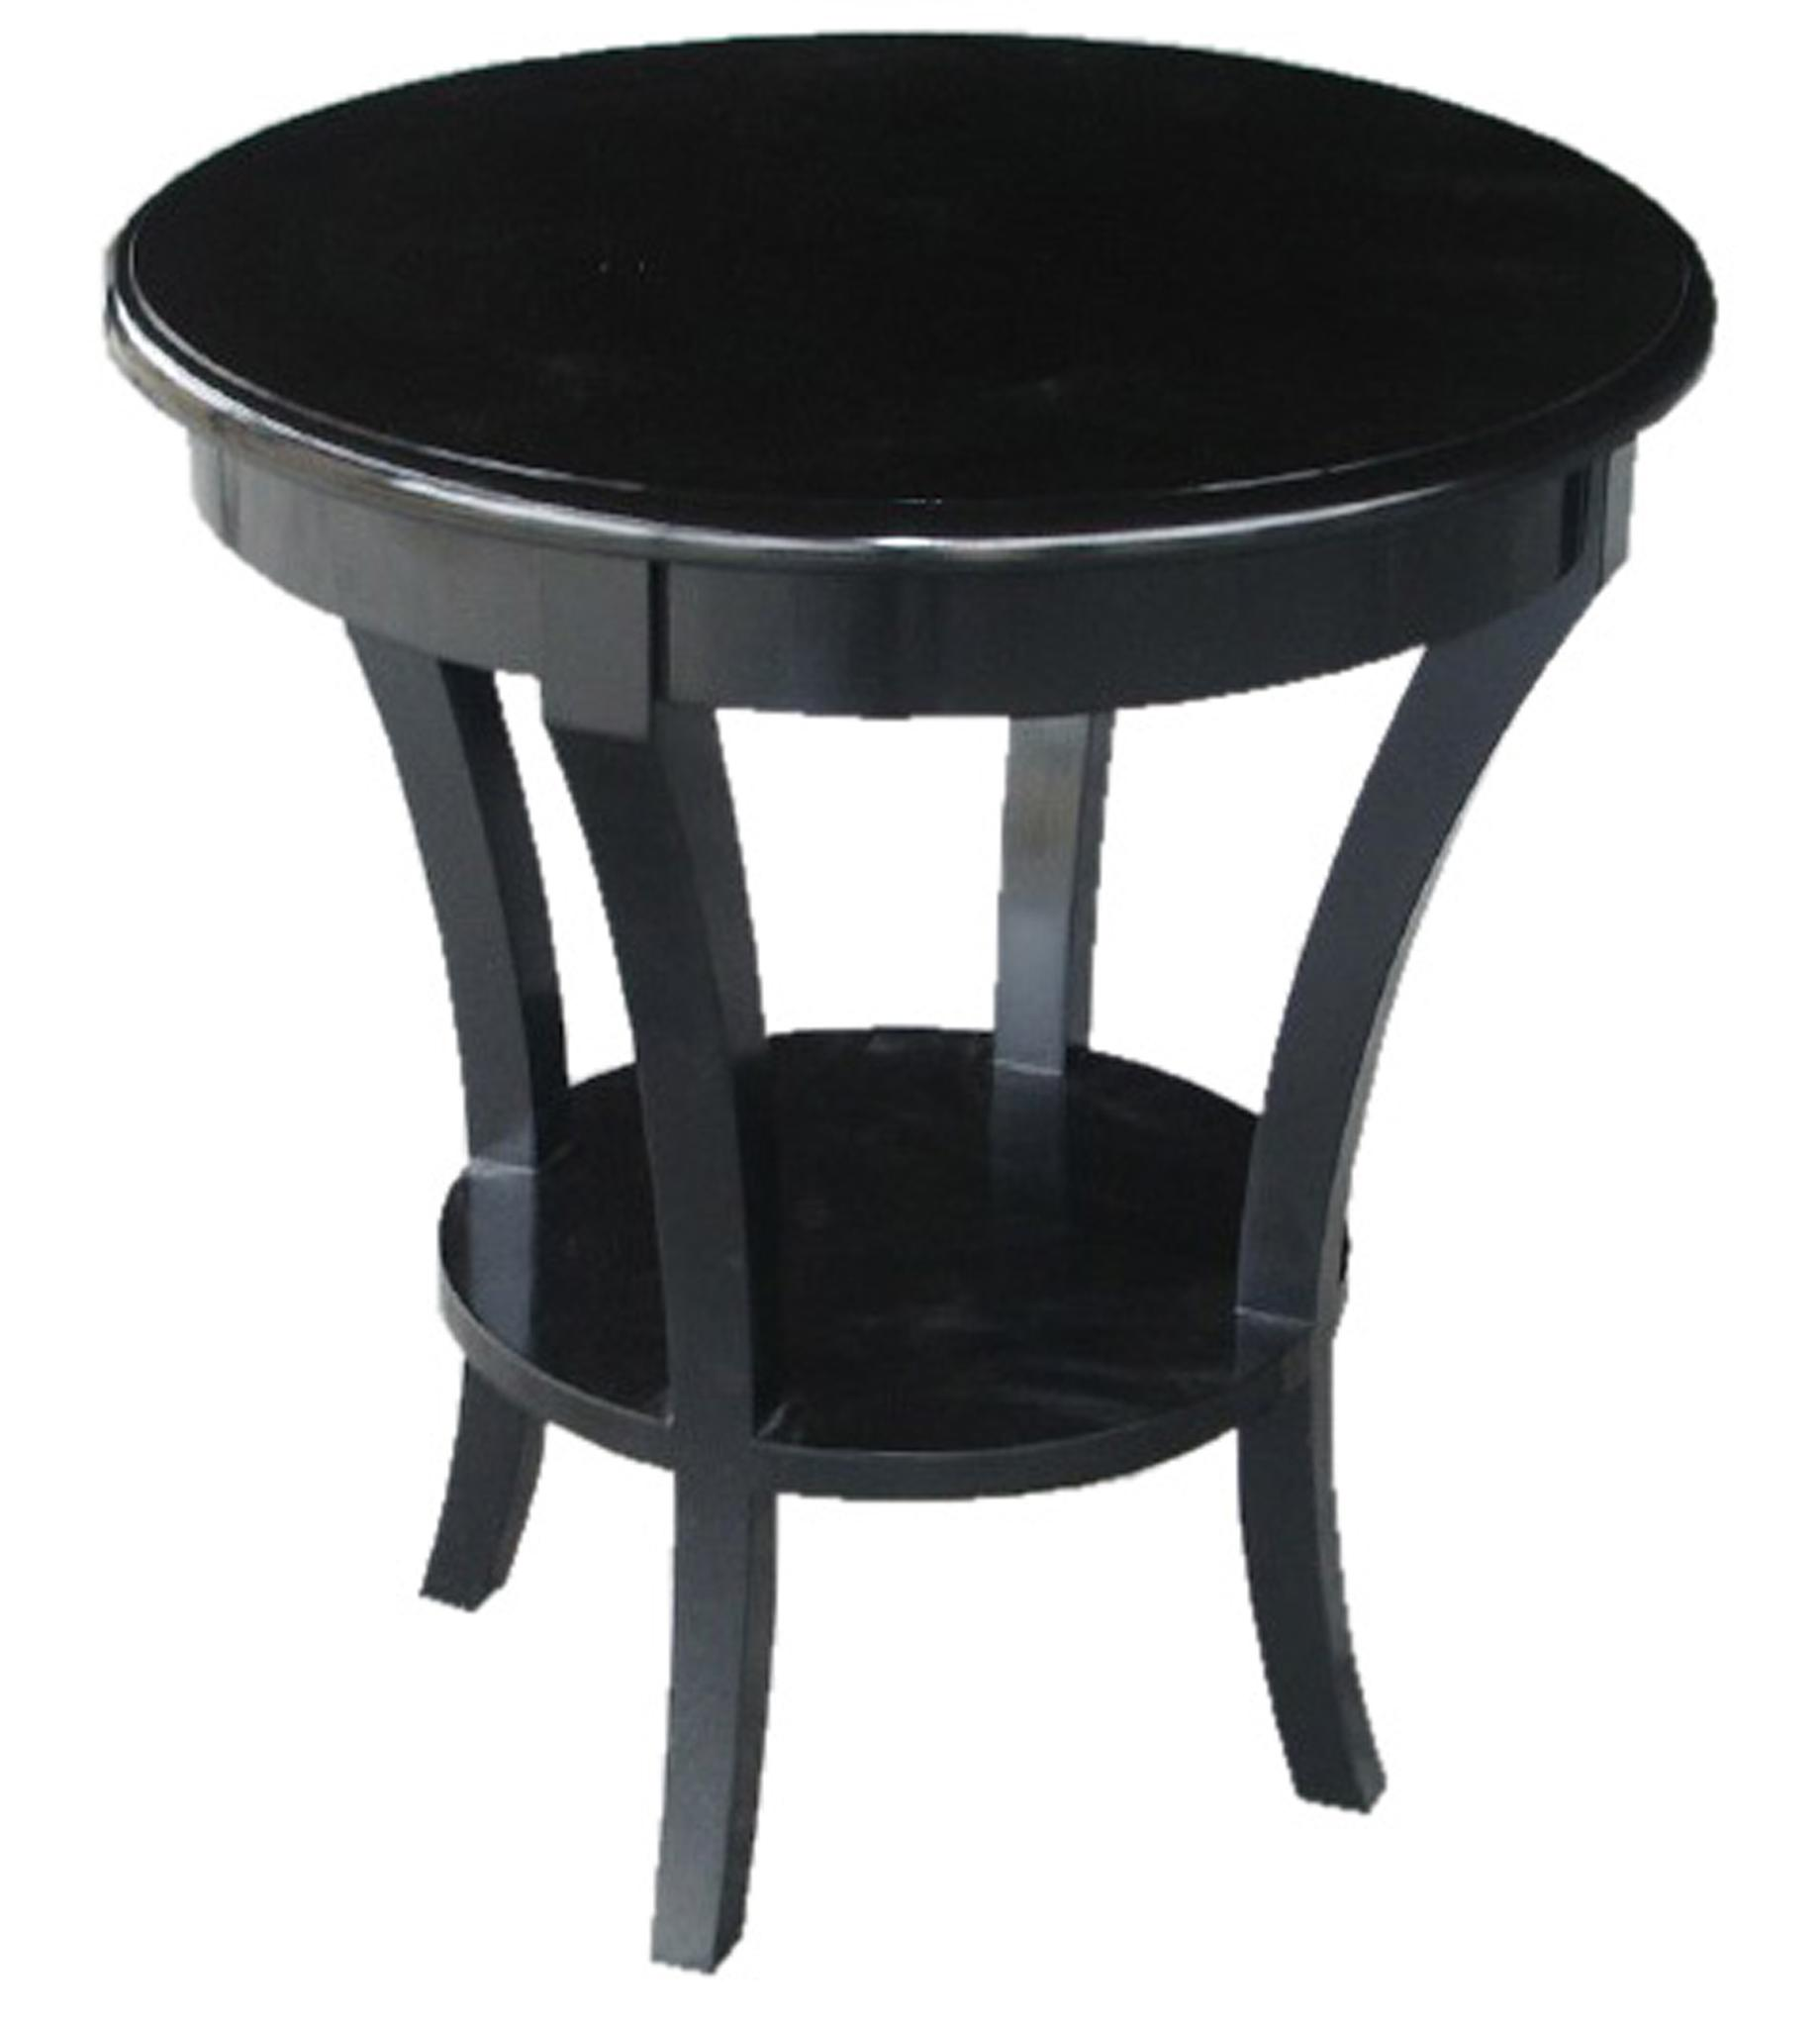 small black tables accent table round end metal cherry furniture door treads wooden marble living room navy blue bedside night stands calgary full coffee white farmhouse with